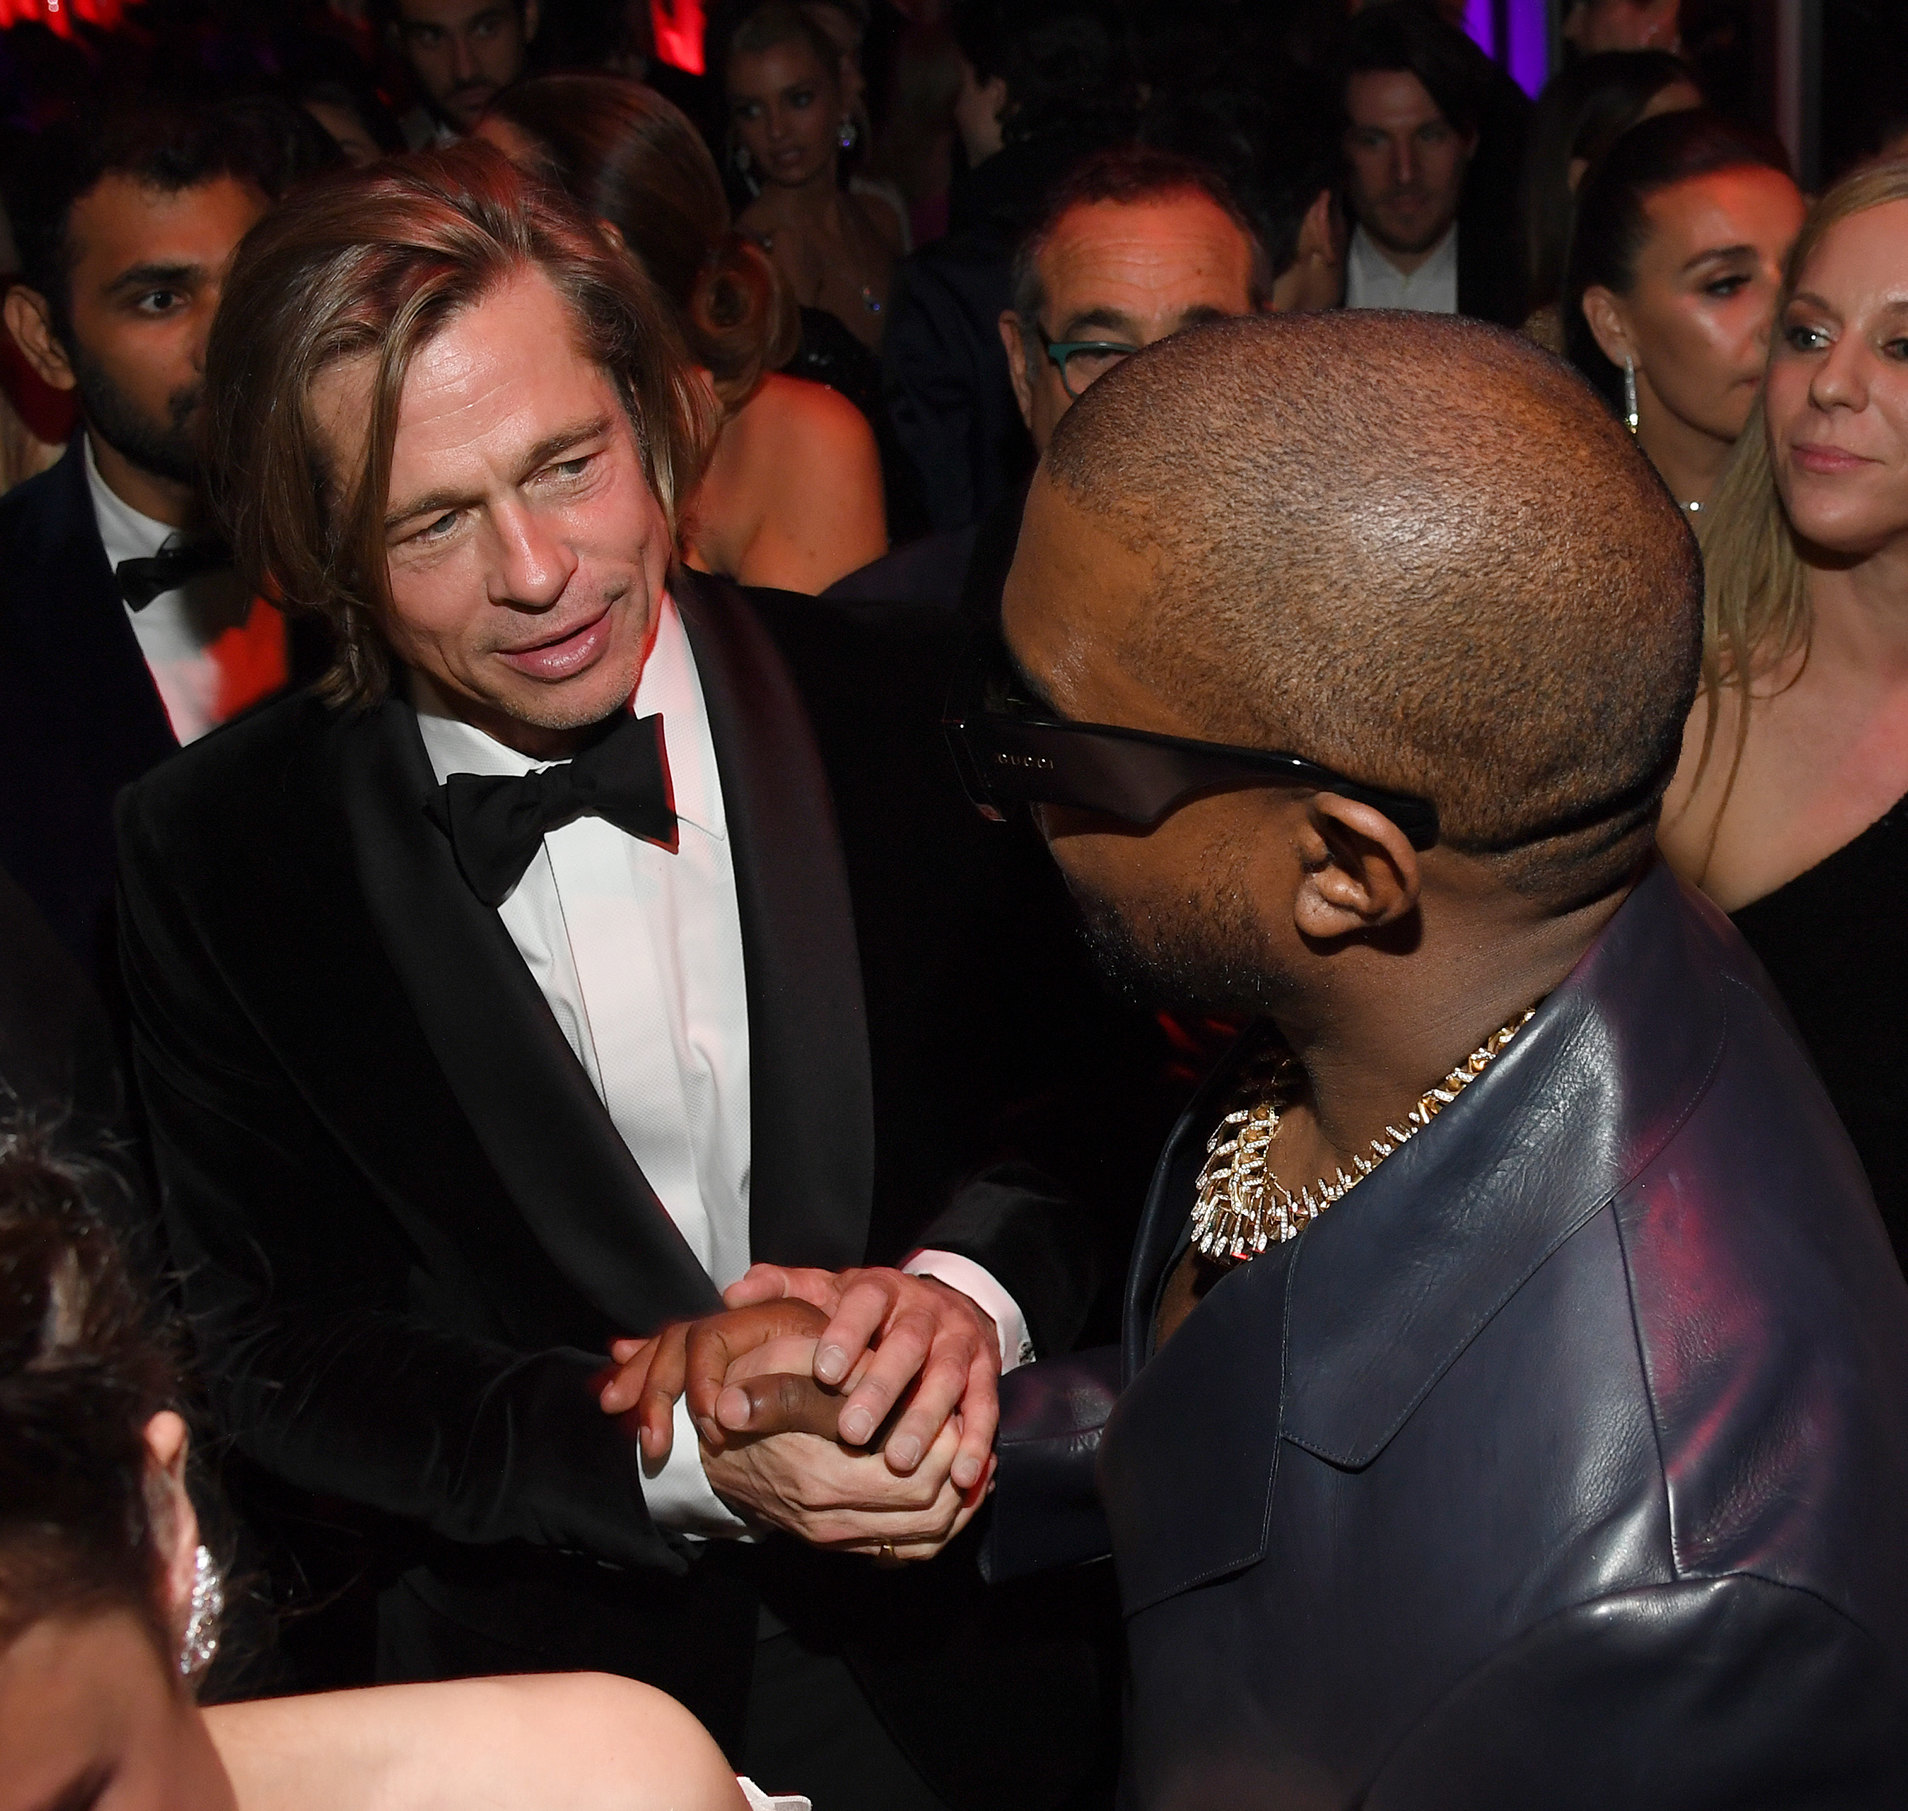 Brad Pitt and Kanye West attend the 2020 Vanity Fair Oscar Party hosted by Radhika Jones at Wallis Annenberg Center for the Performing Arts on February 09, 2020 in Beverly Hills, California. (Photo by Kevin Mazur/VF20/WireImage)